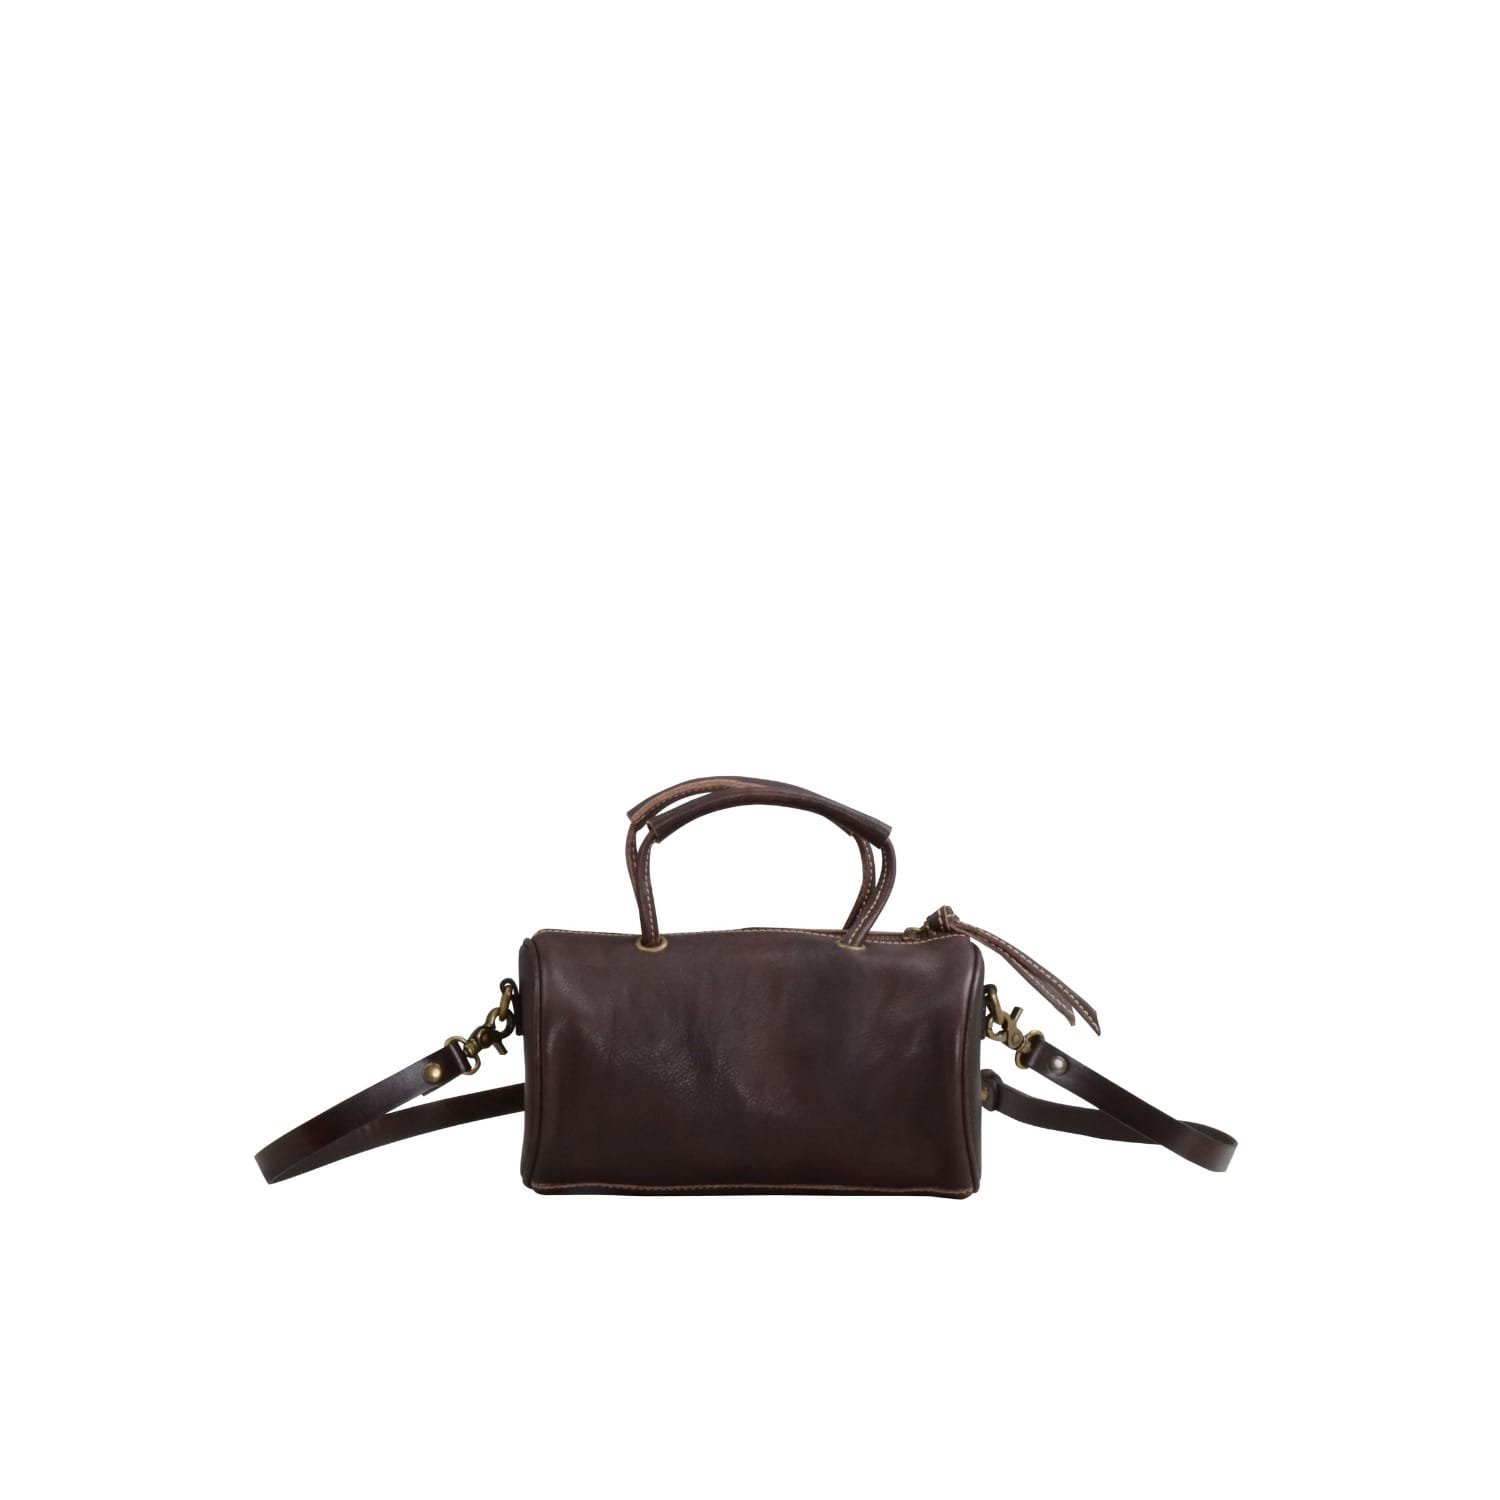 3de195864651 Leather Baguette Crossbody Bag In Dark Brown image